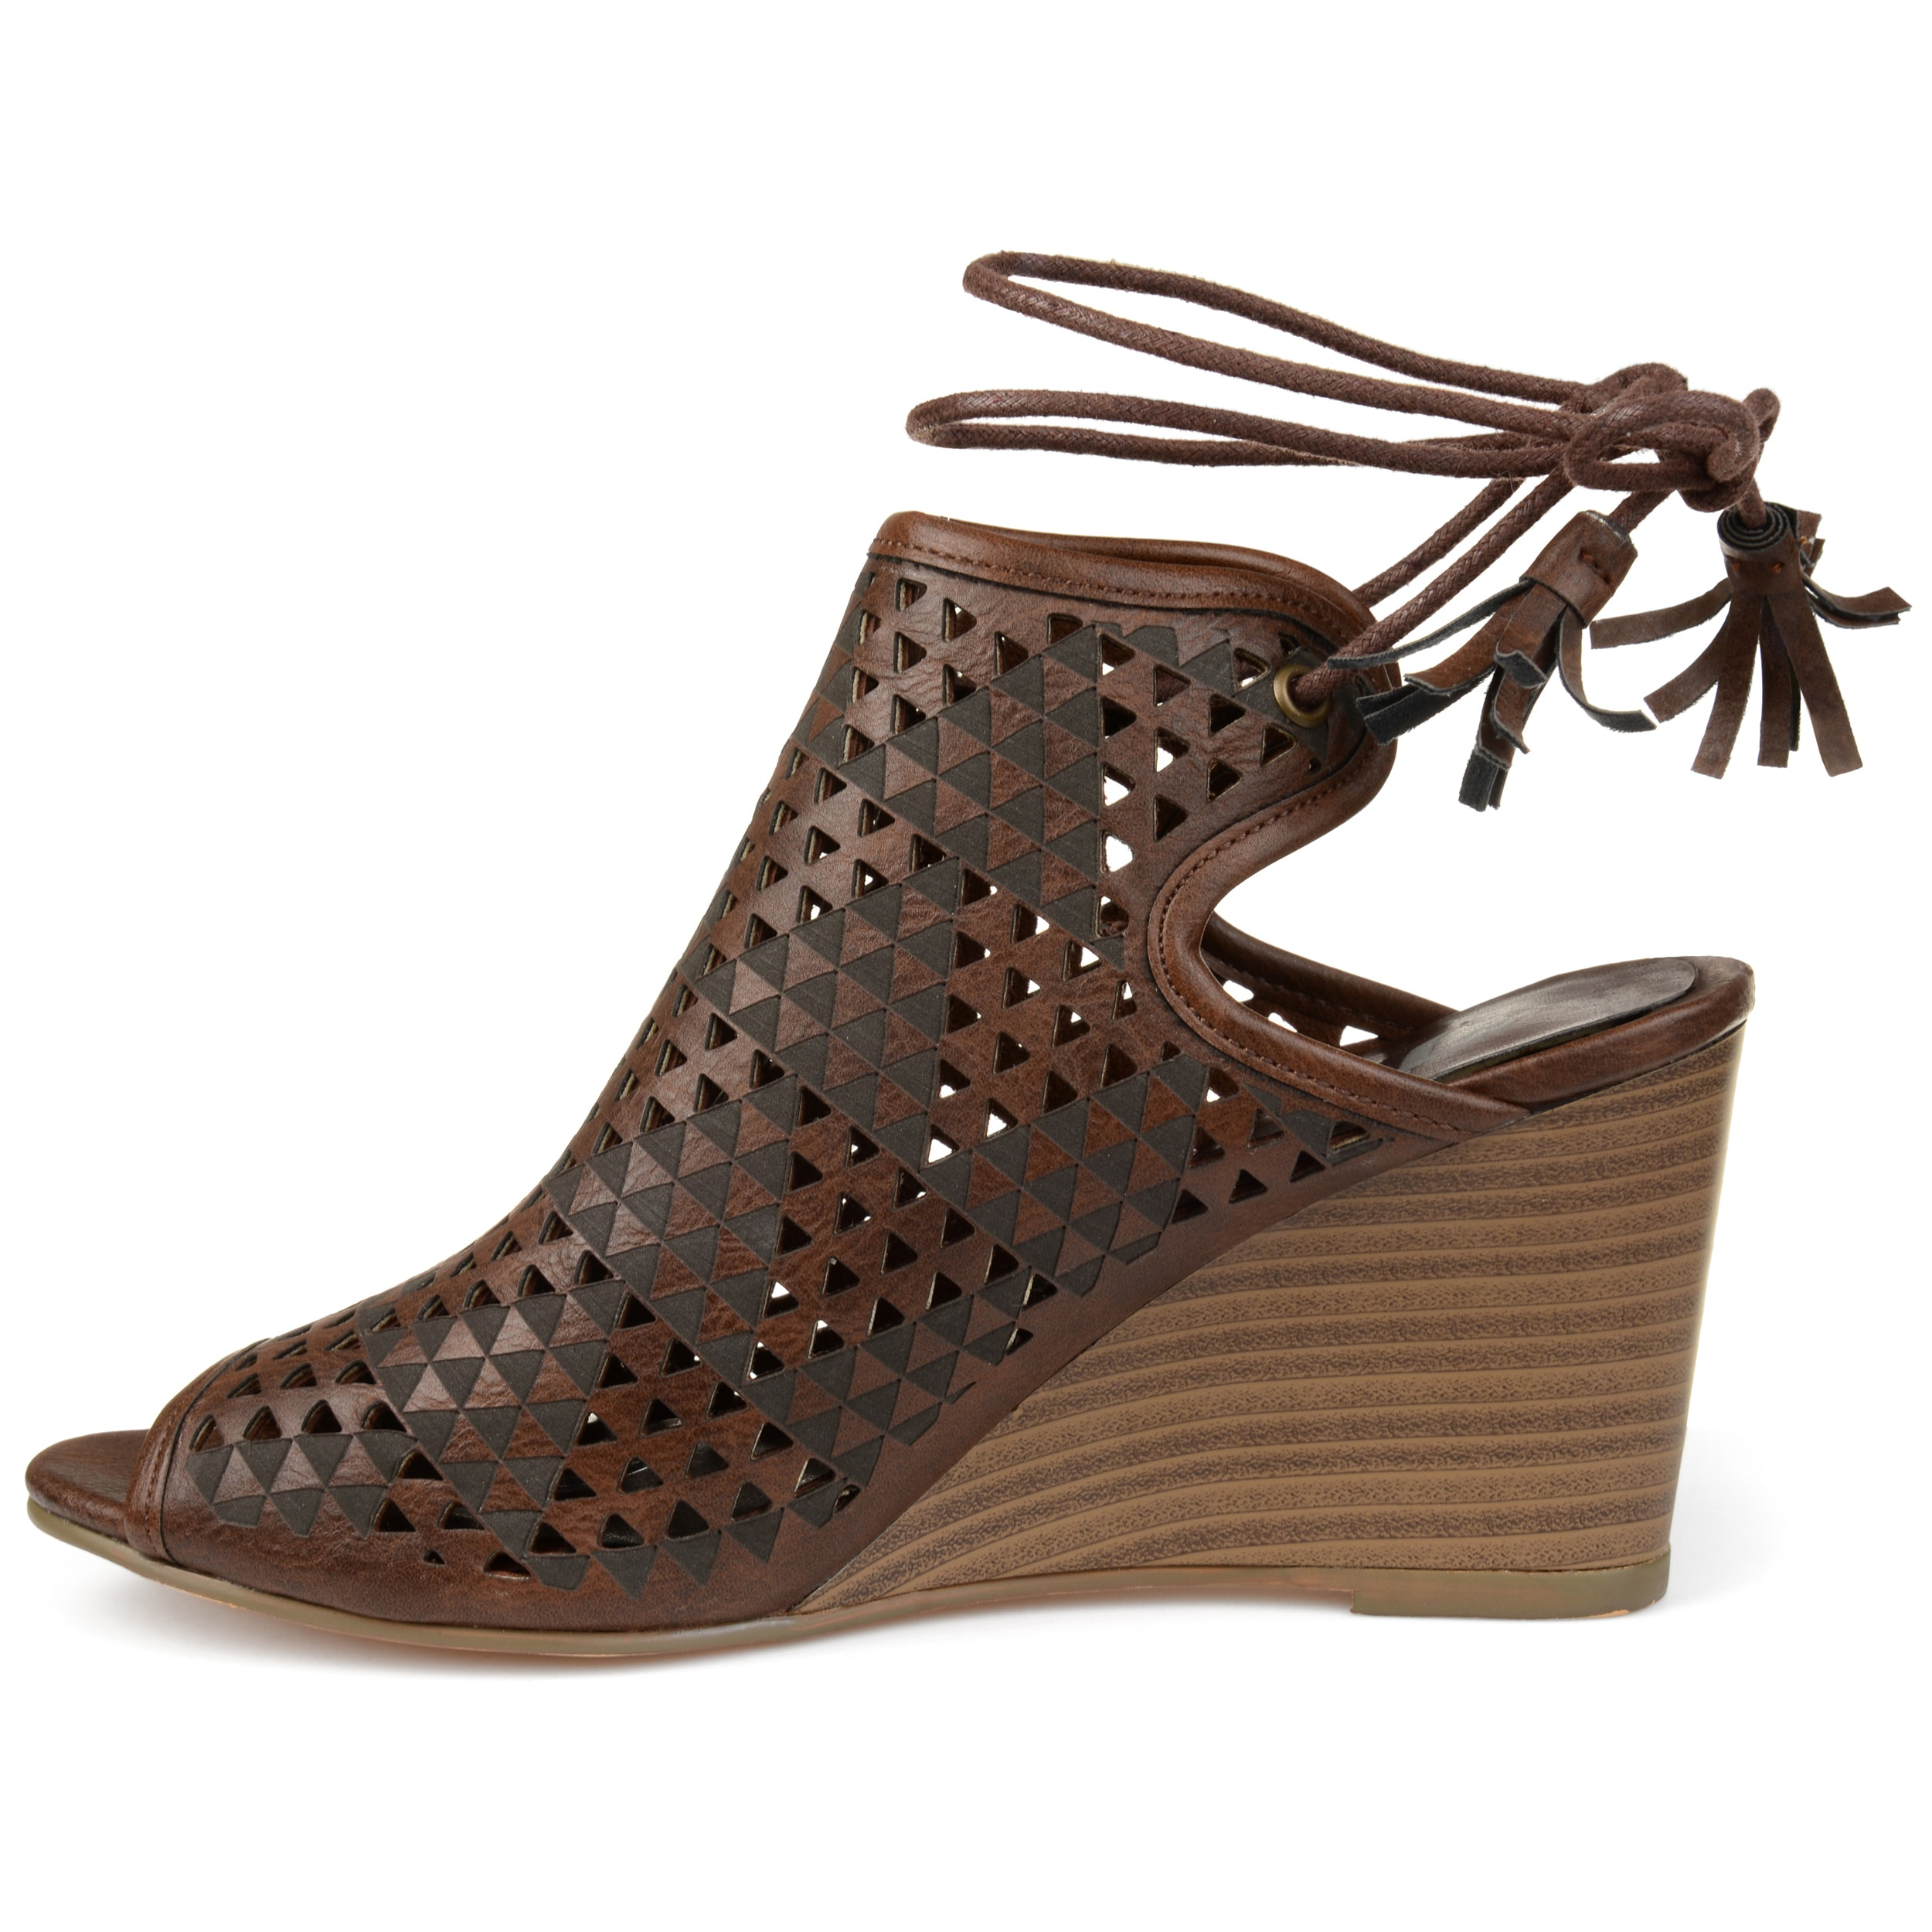 Journee Collection Tandra ... Women's Wedge Sandals Jd5sd4